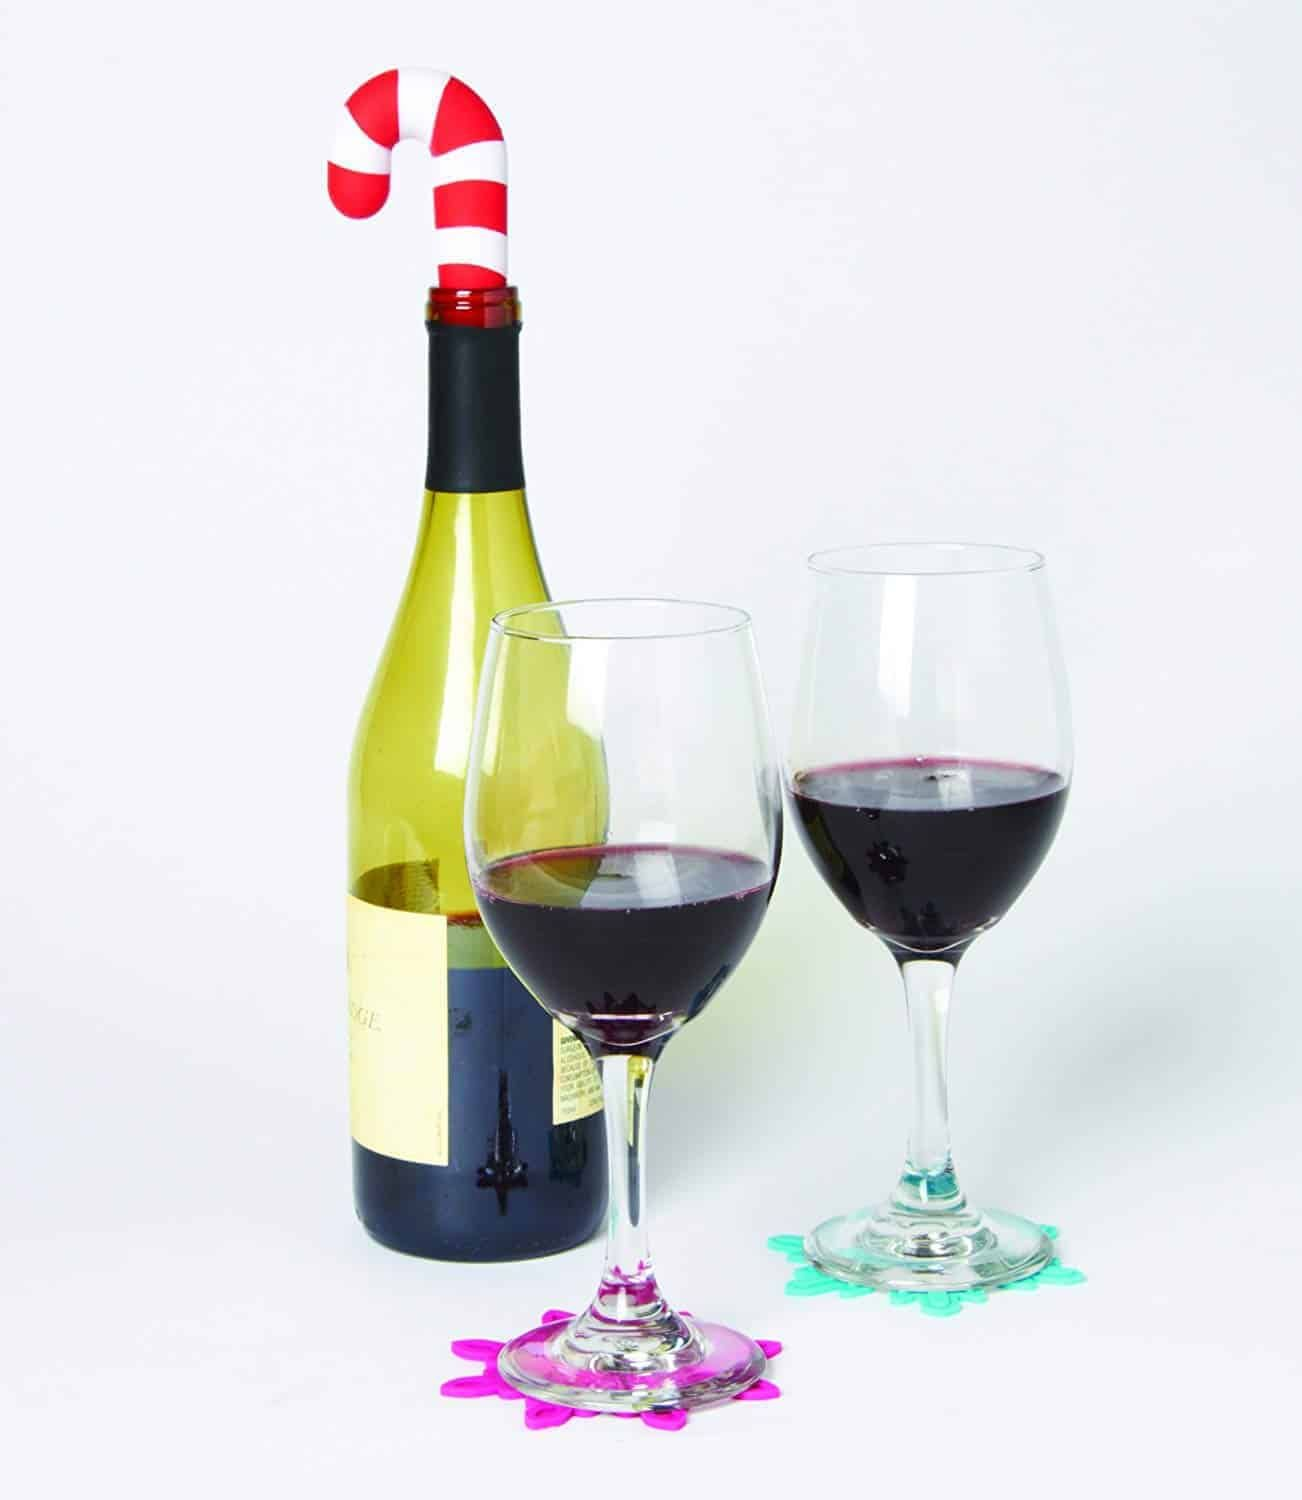 17 Unique Wine Stoppers To Preserve Your Wine Bottles On This